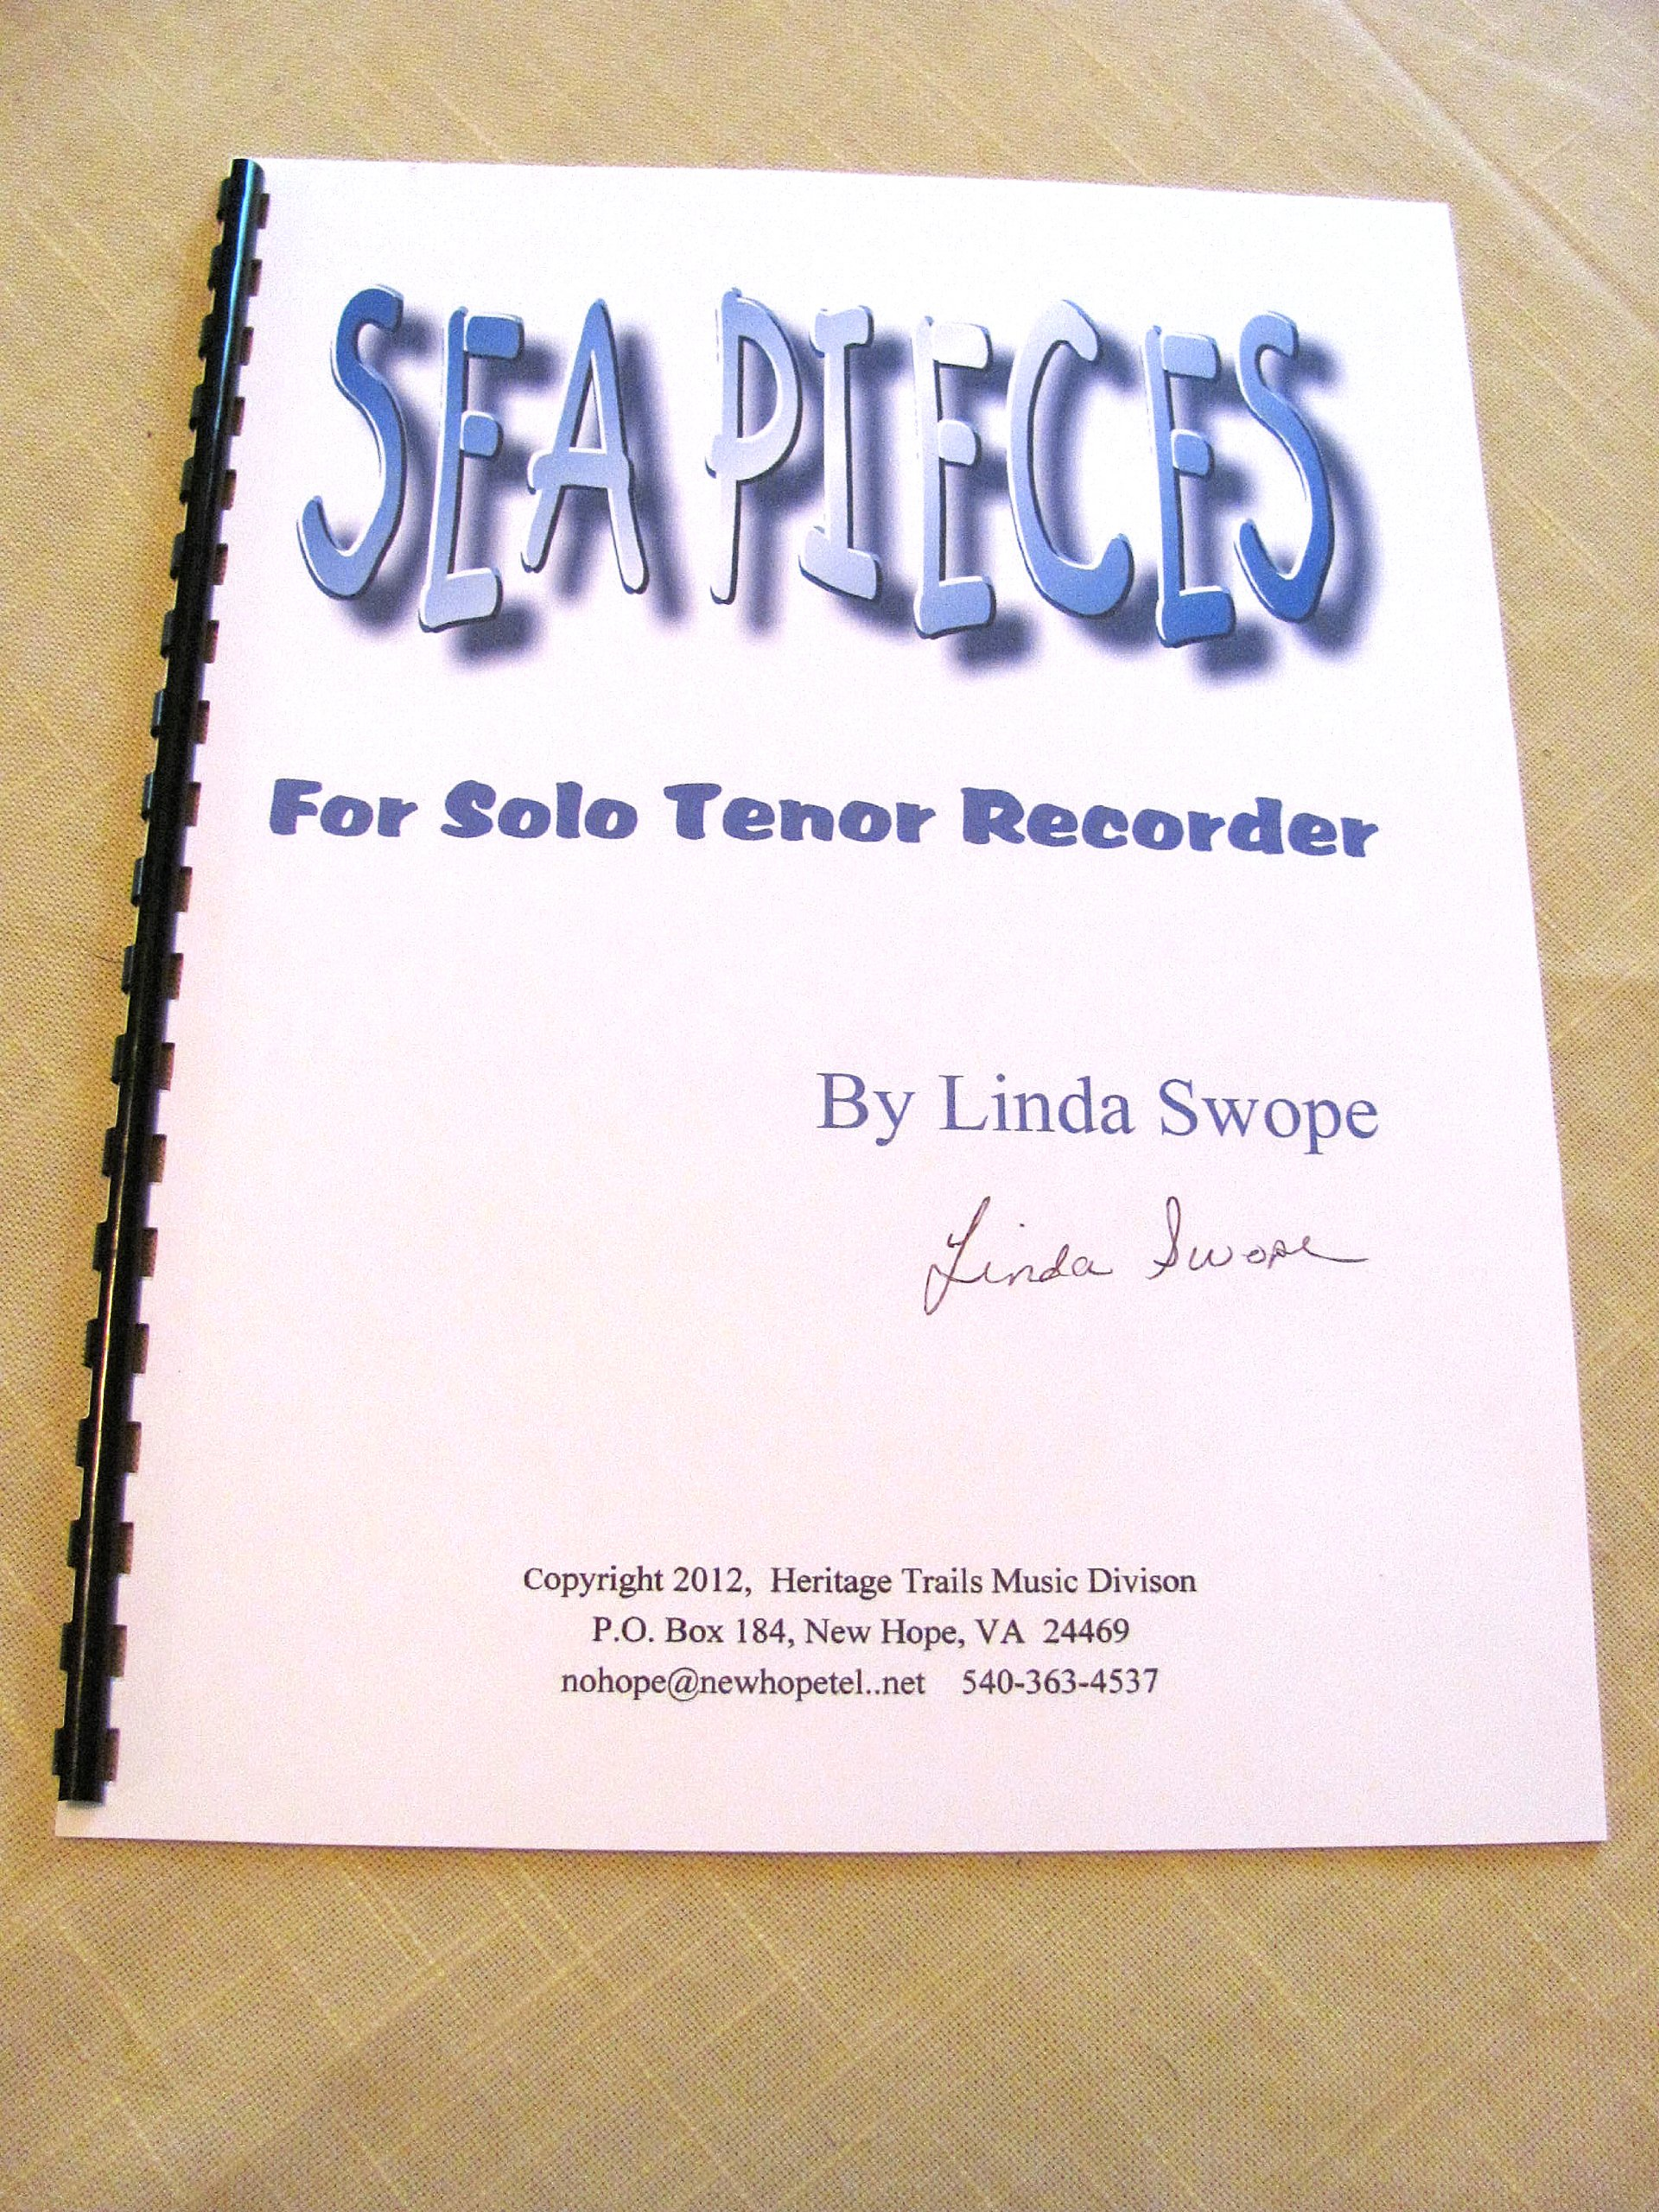 Sea Pieces for Solo Tenor Recorder by Linda Swope